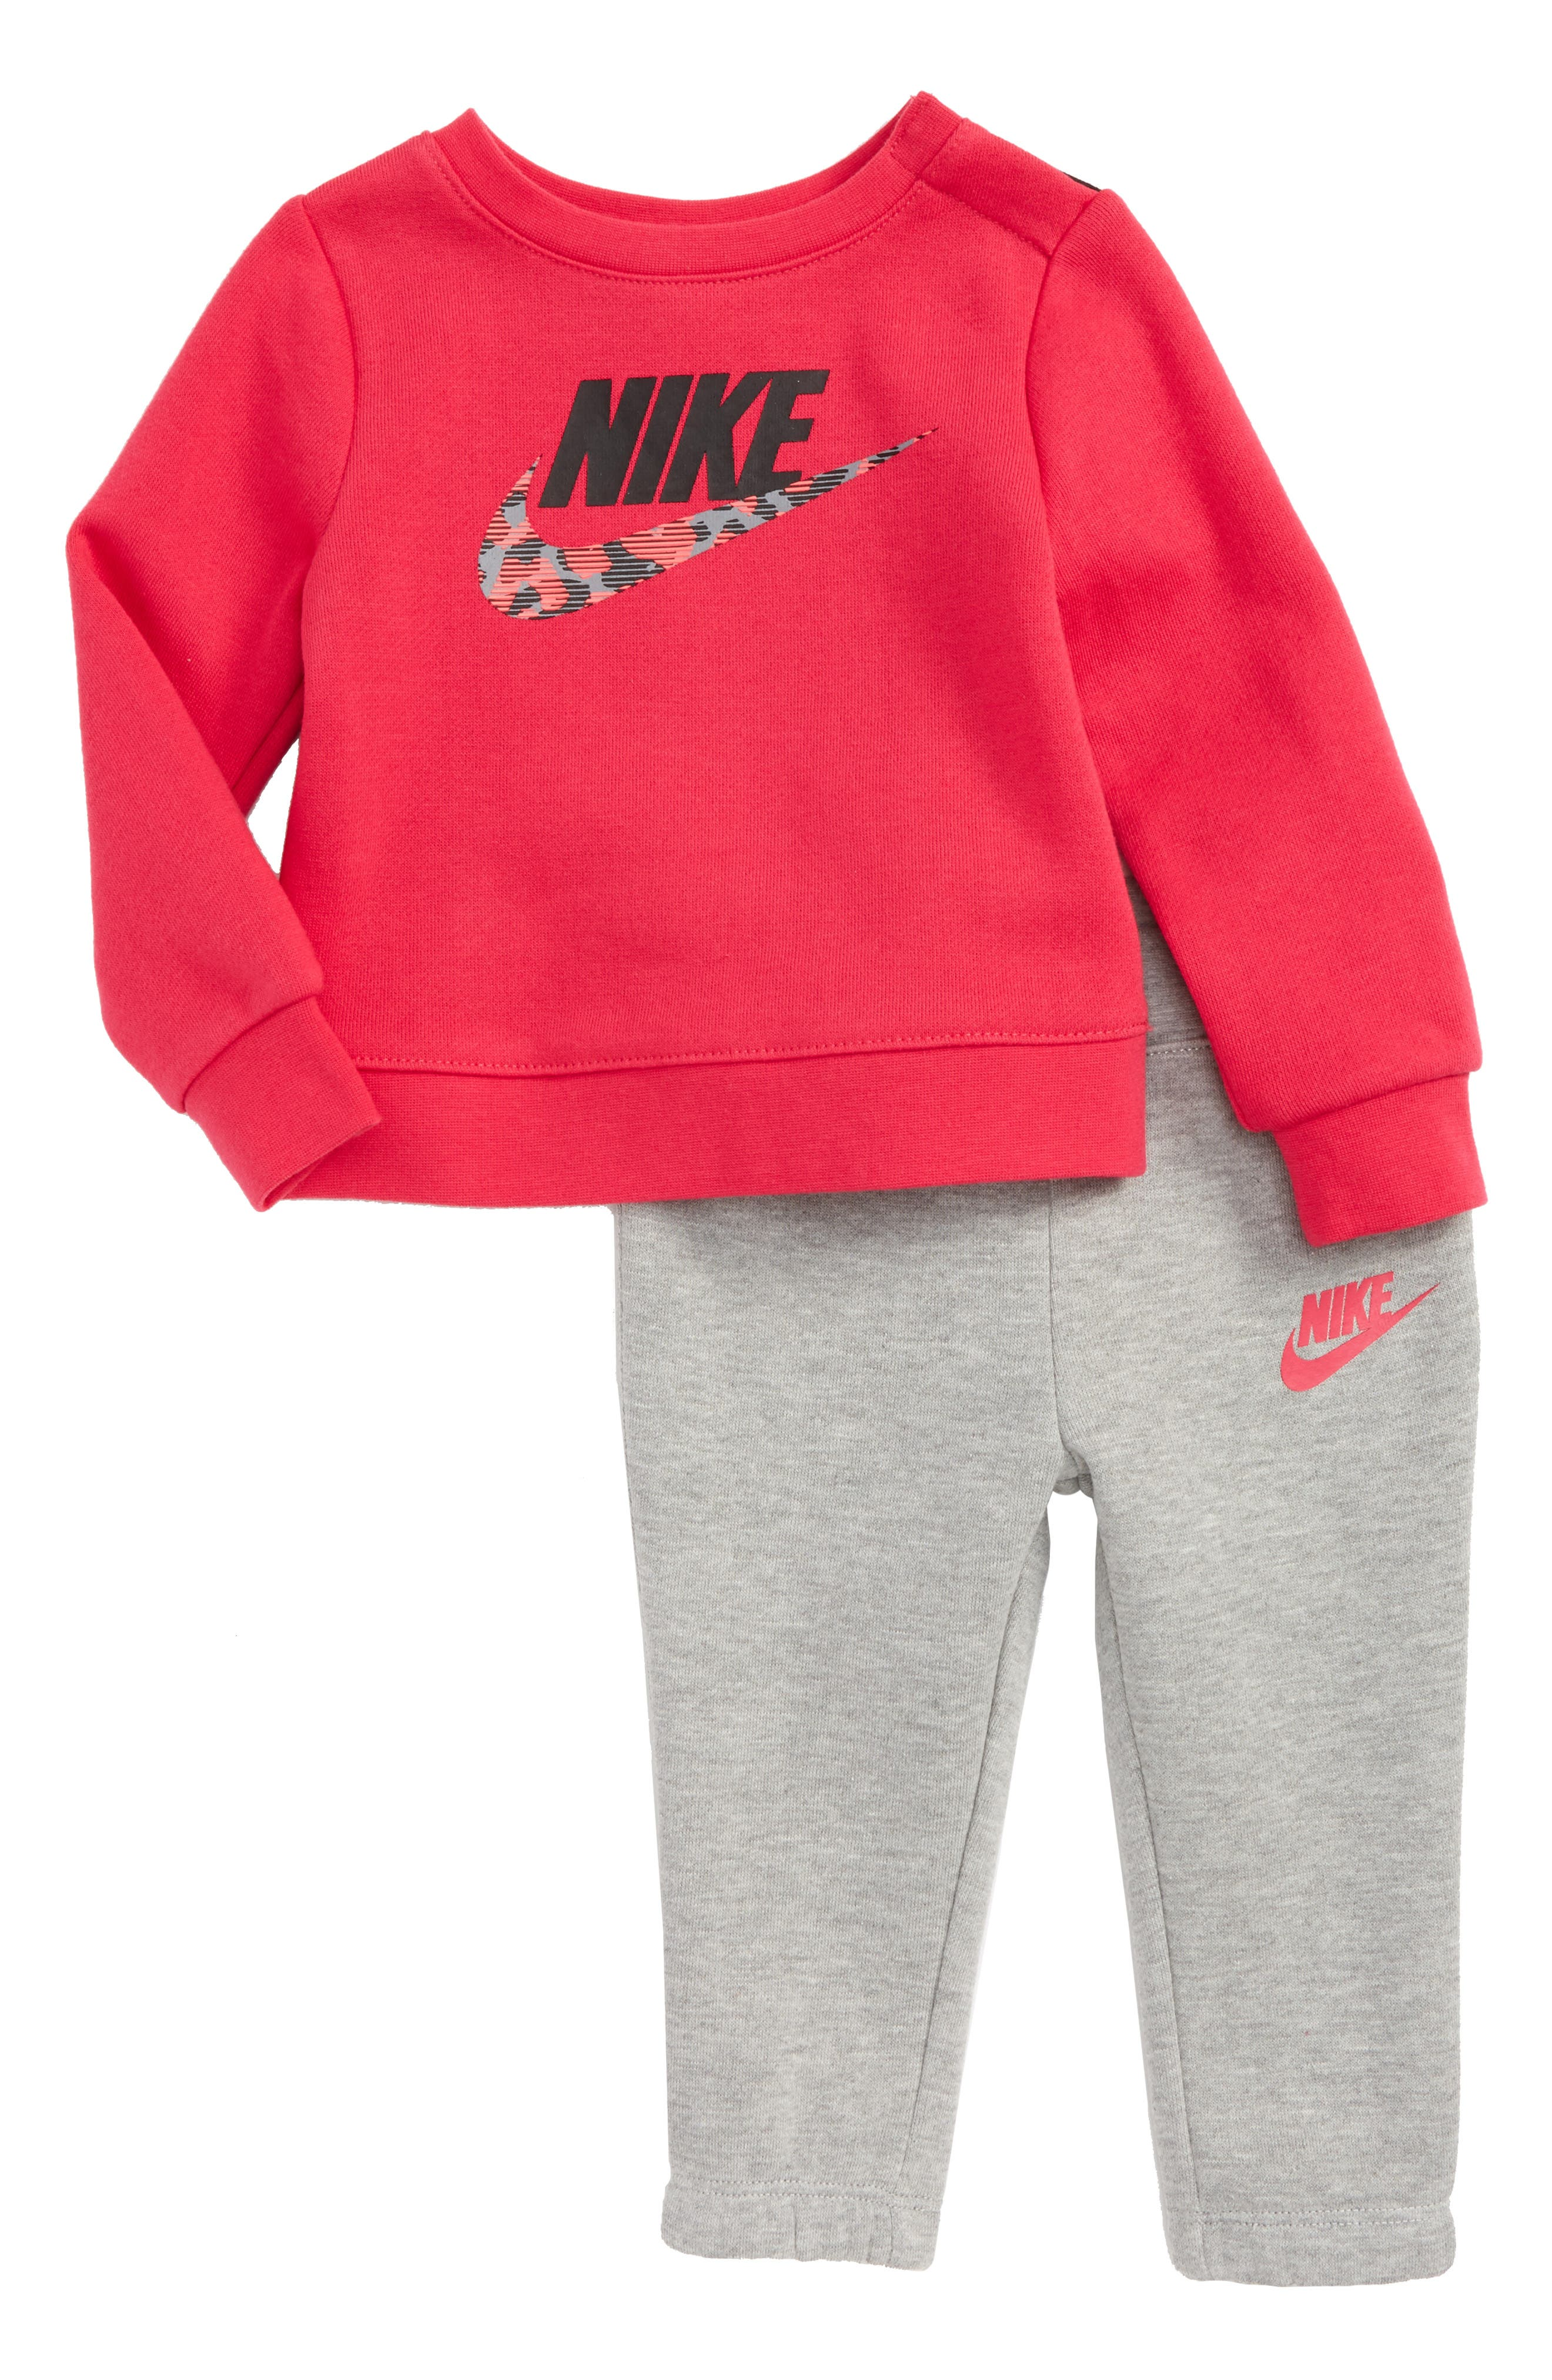 Fleece Sweatshirt & Sweatpants Set,                             Main thumbnail 1, color,                             088